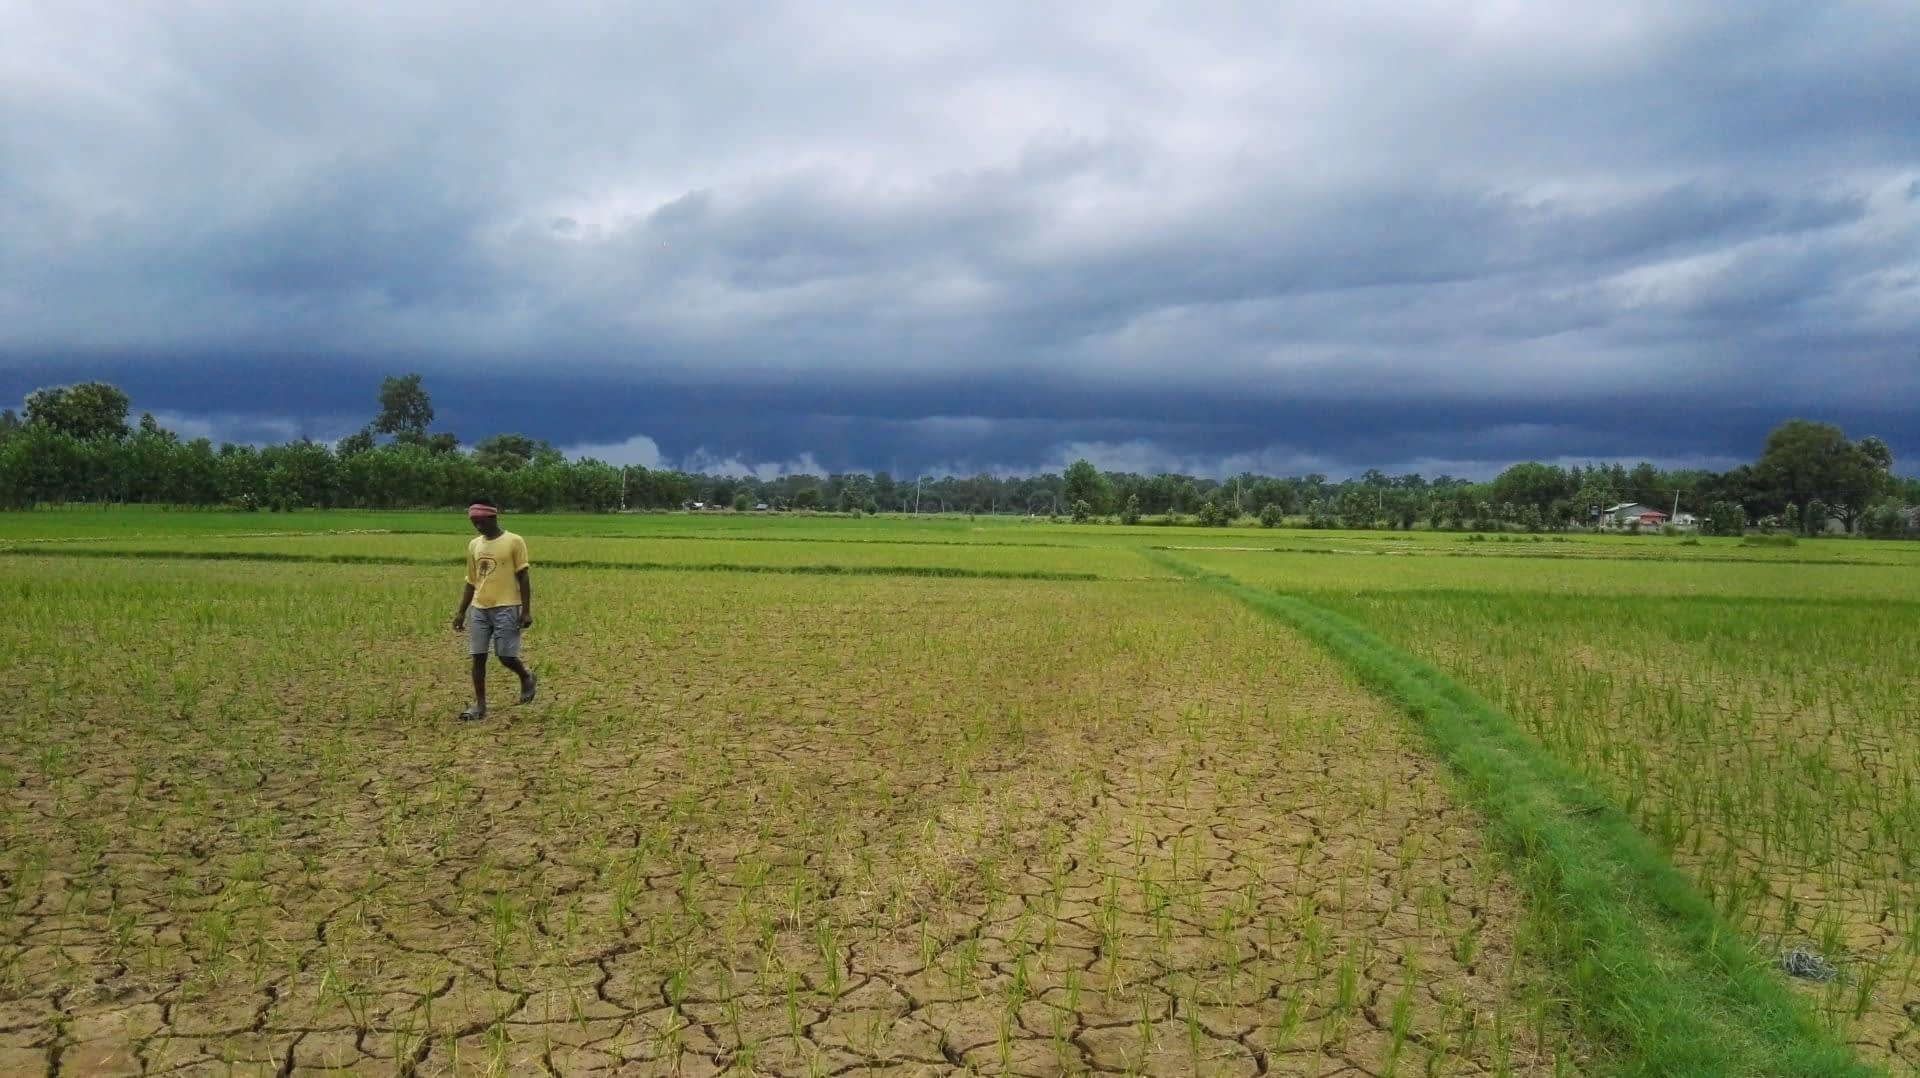 A farmer in Banke district during monsoon season drought in 2017. (Photo: Anton Urfels/CIMMYT)